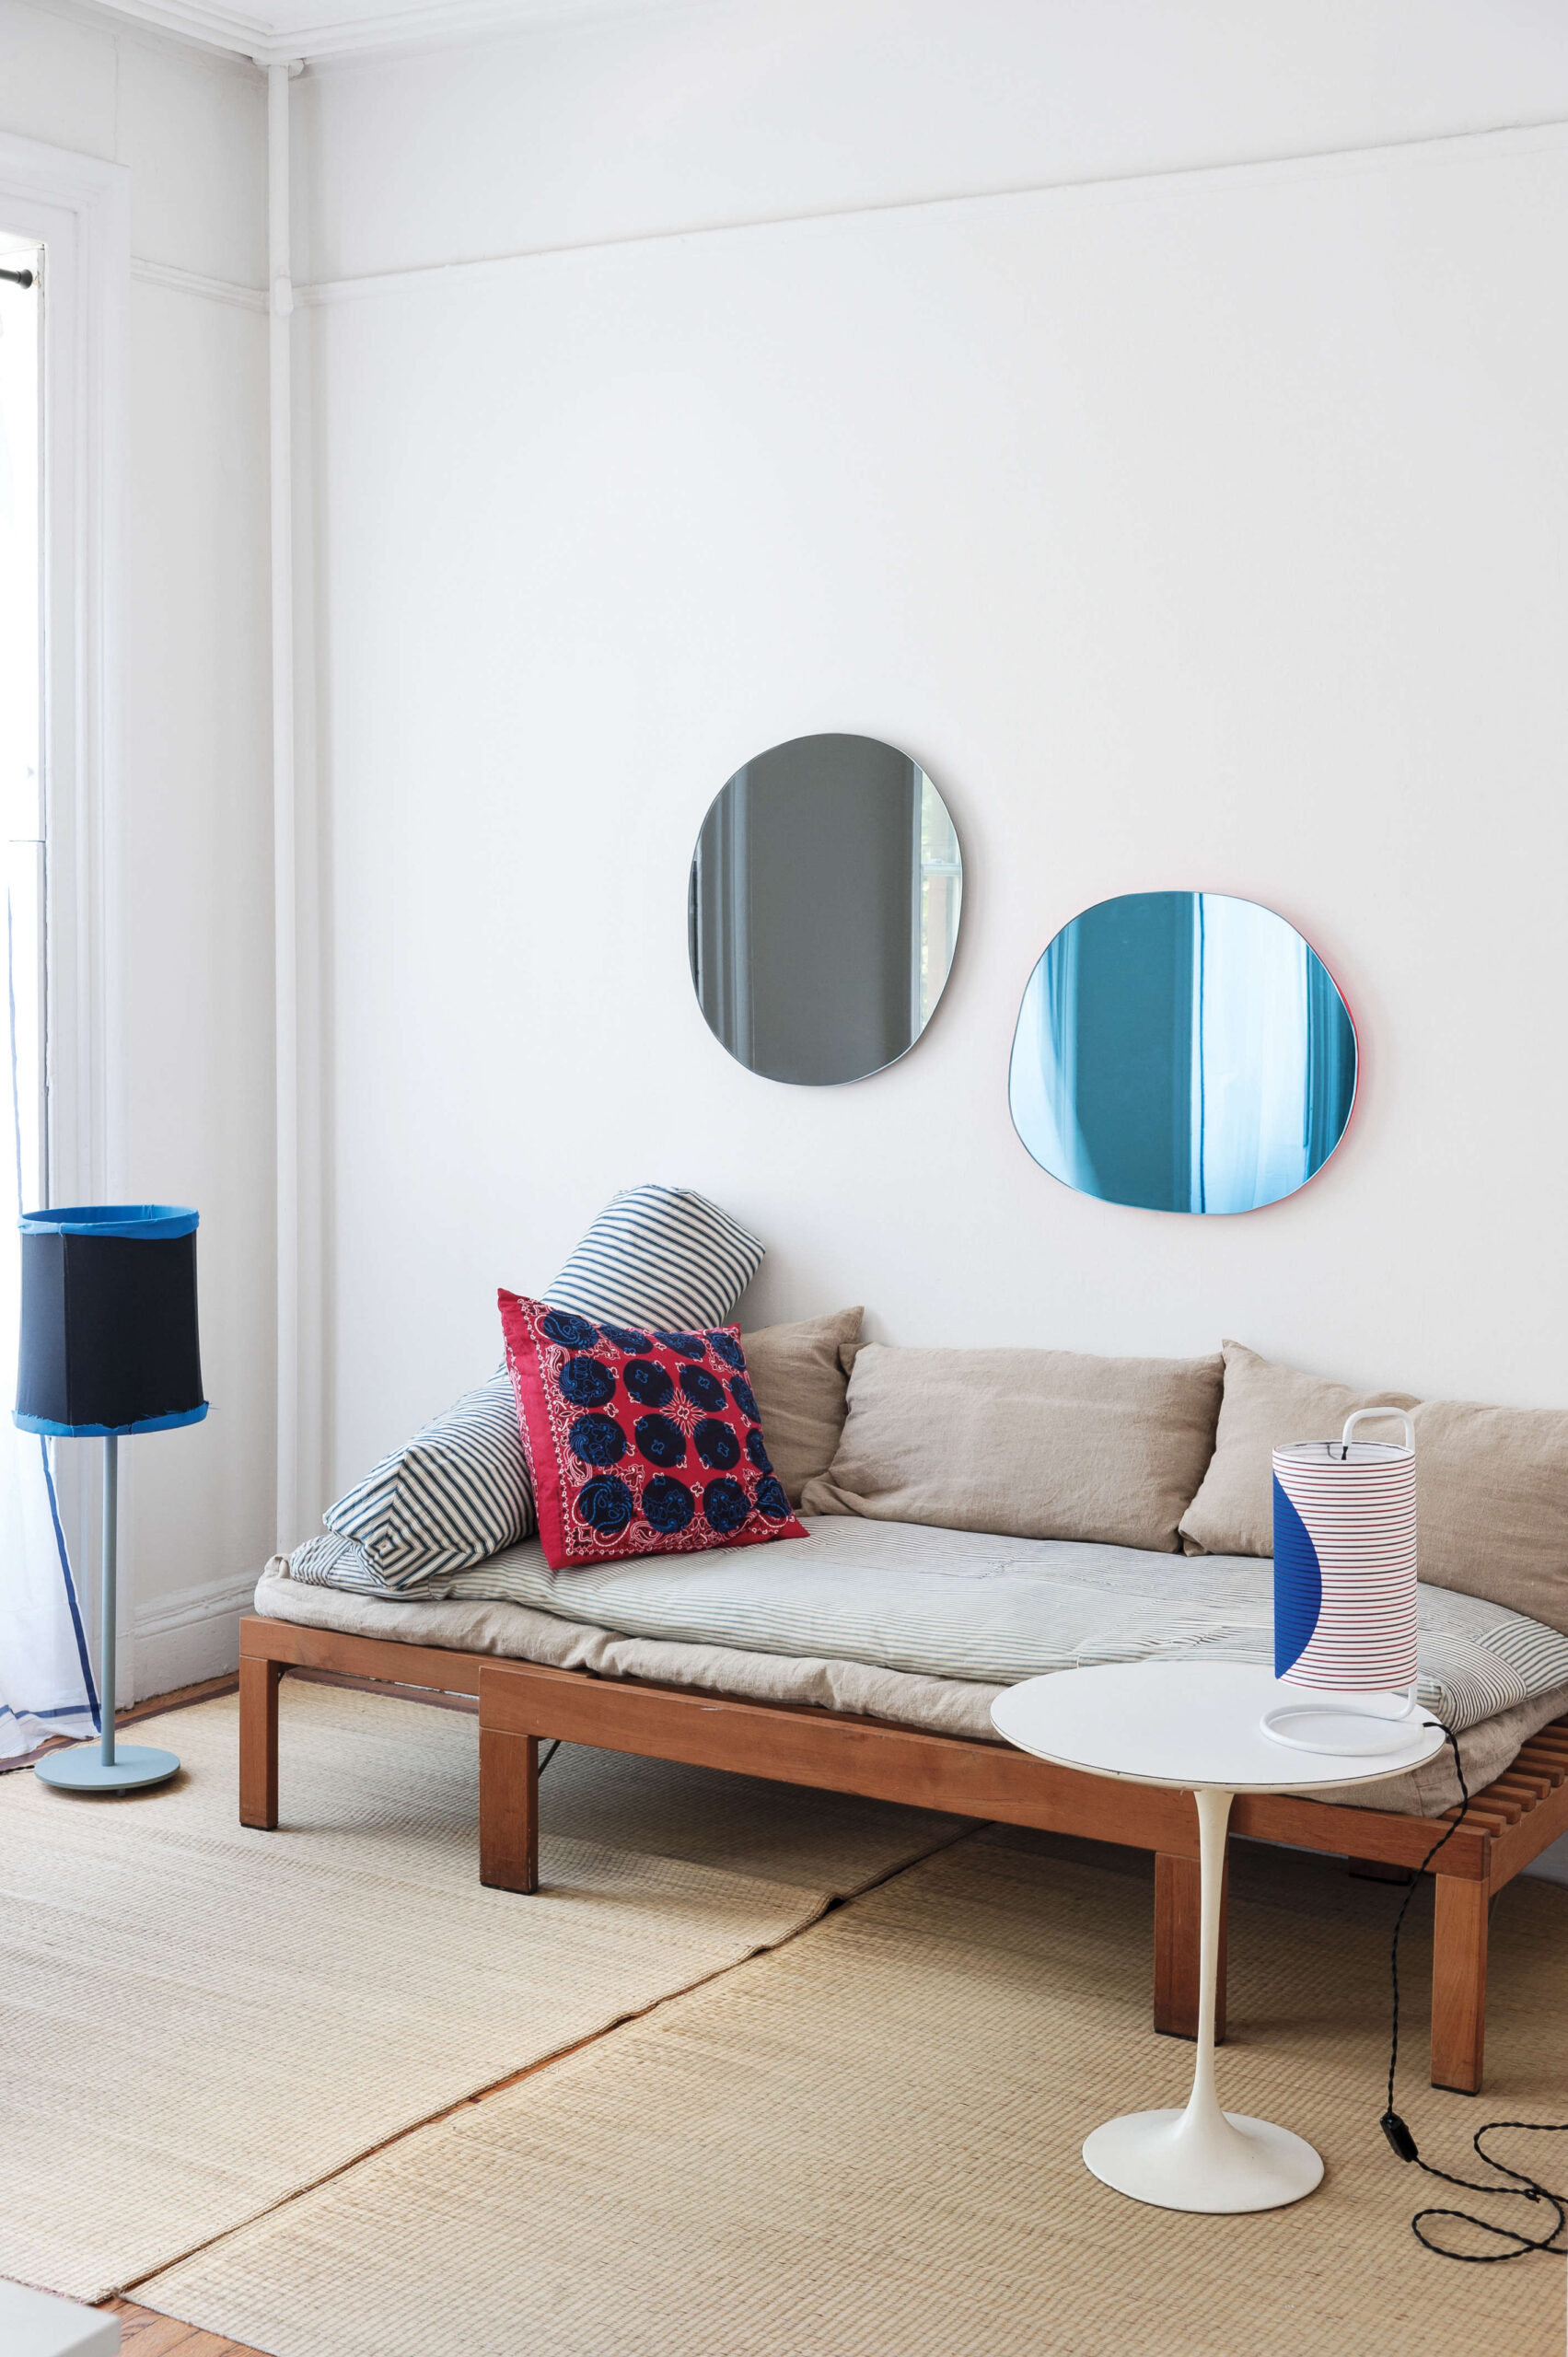 No Need To Remodeling, Just Use This 11 Tips to Expand Your Apartment!